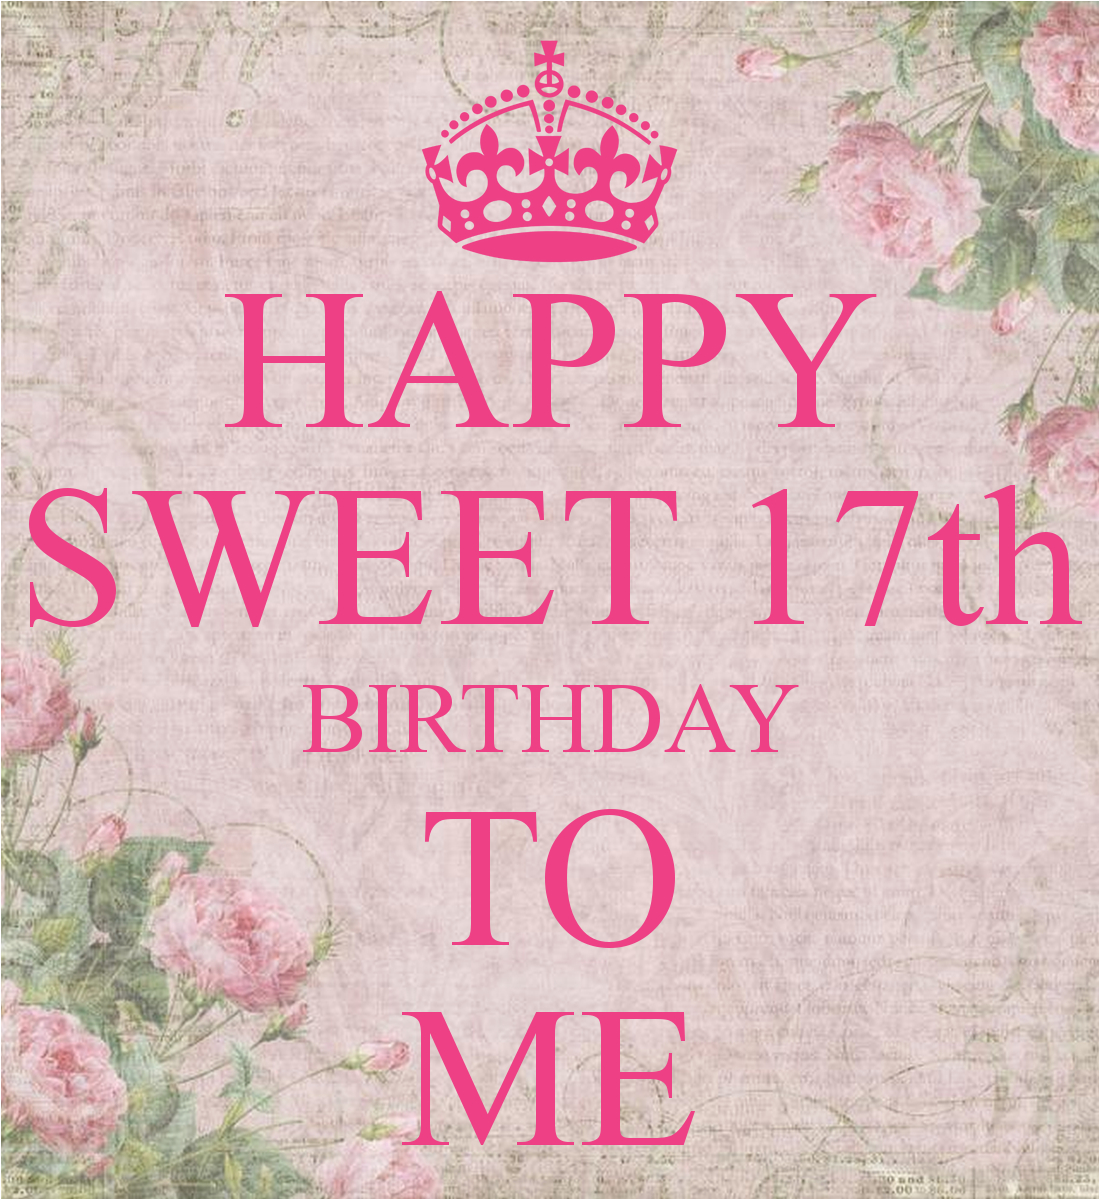 sweet 17th birthday quotes for girls